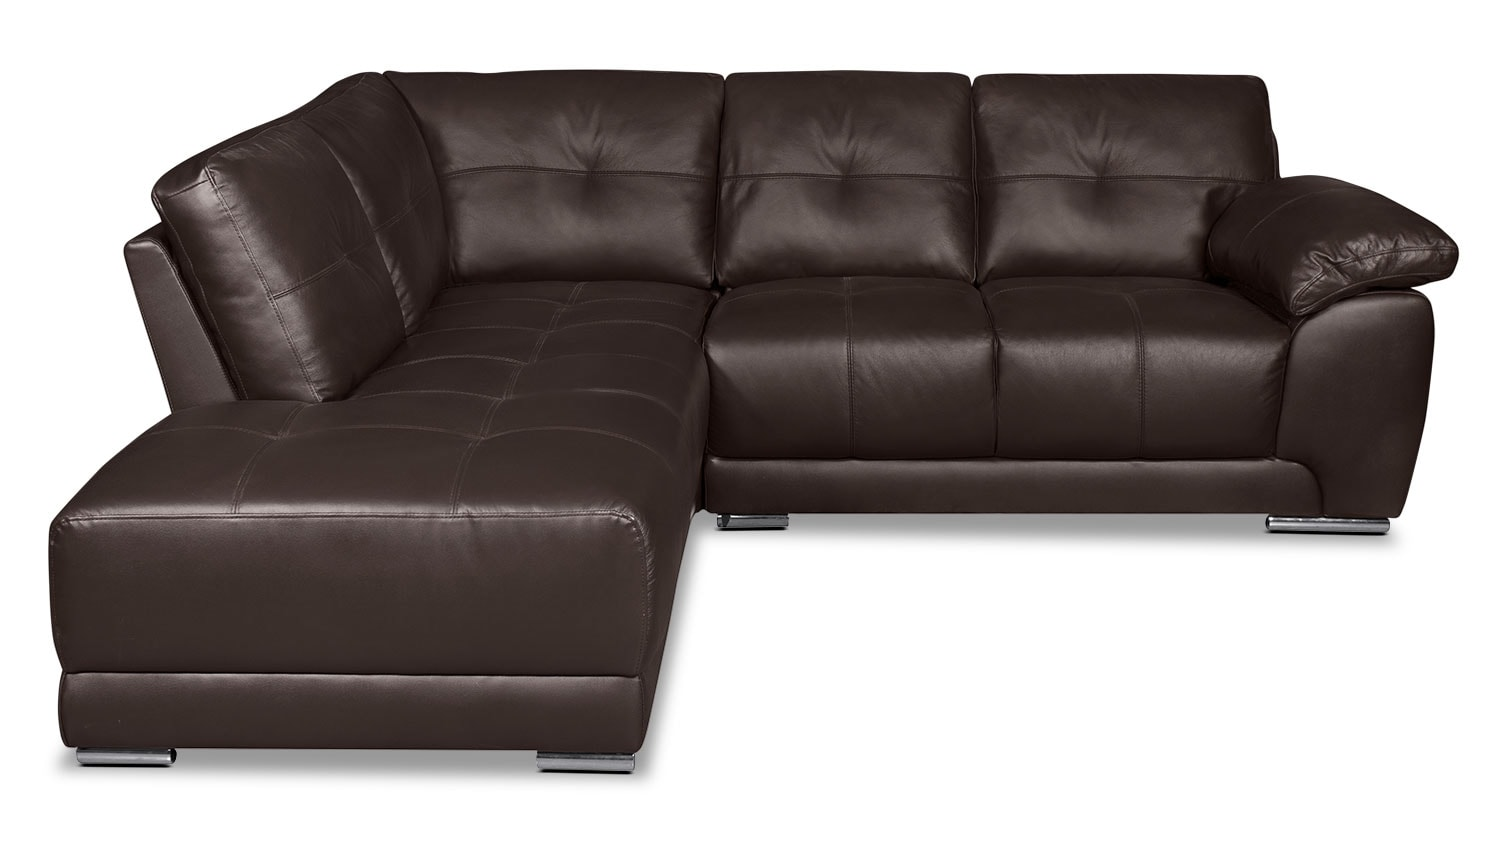 Rylee 2-Piece Genuine Leather Left-Facing Sectional - Brown